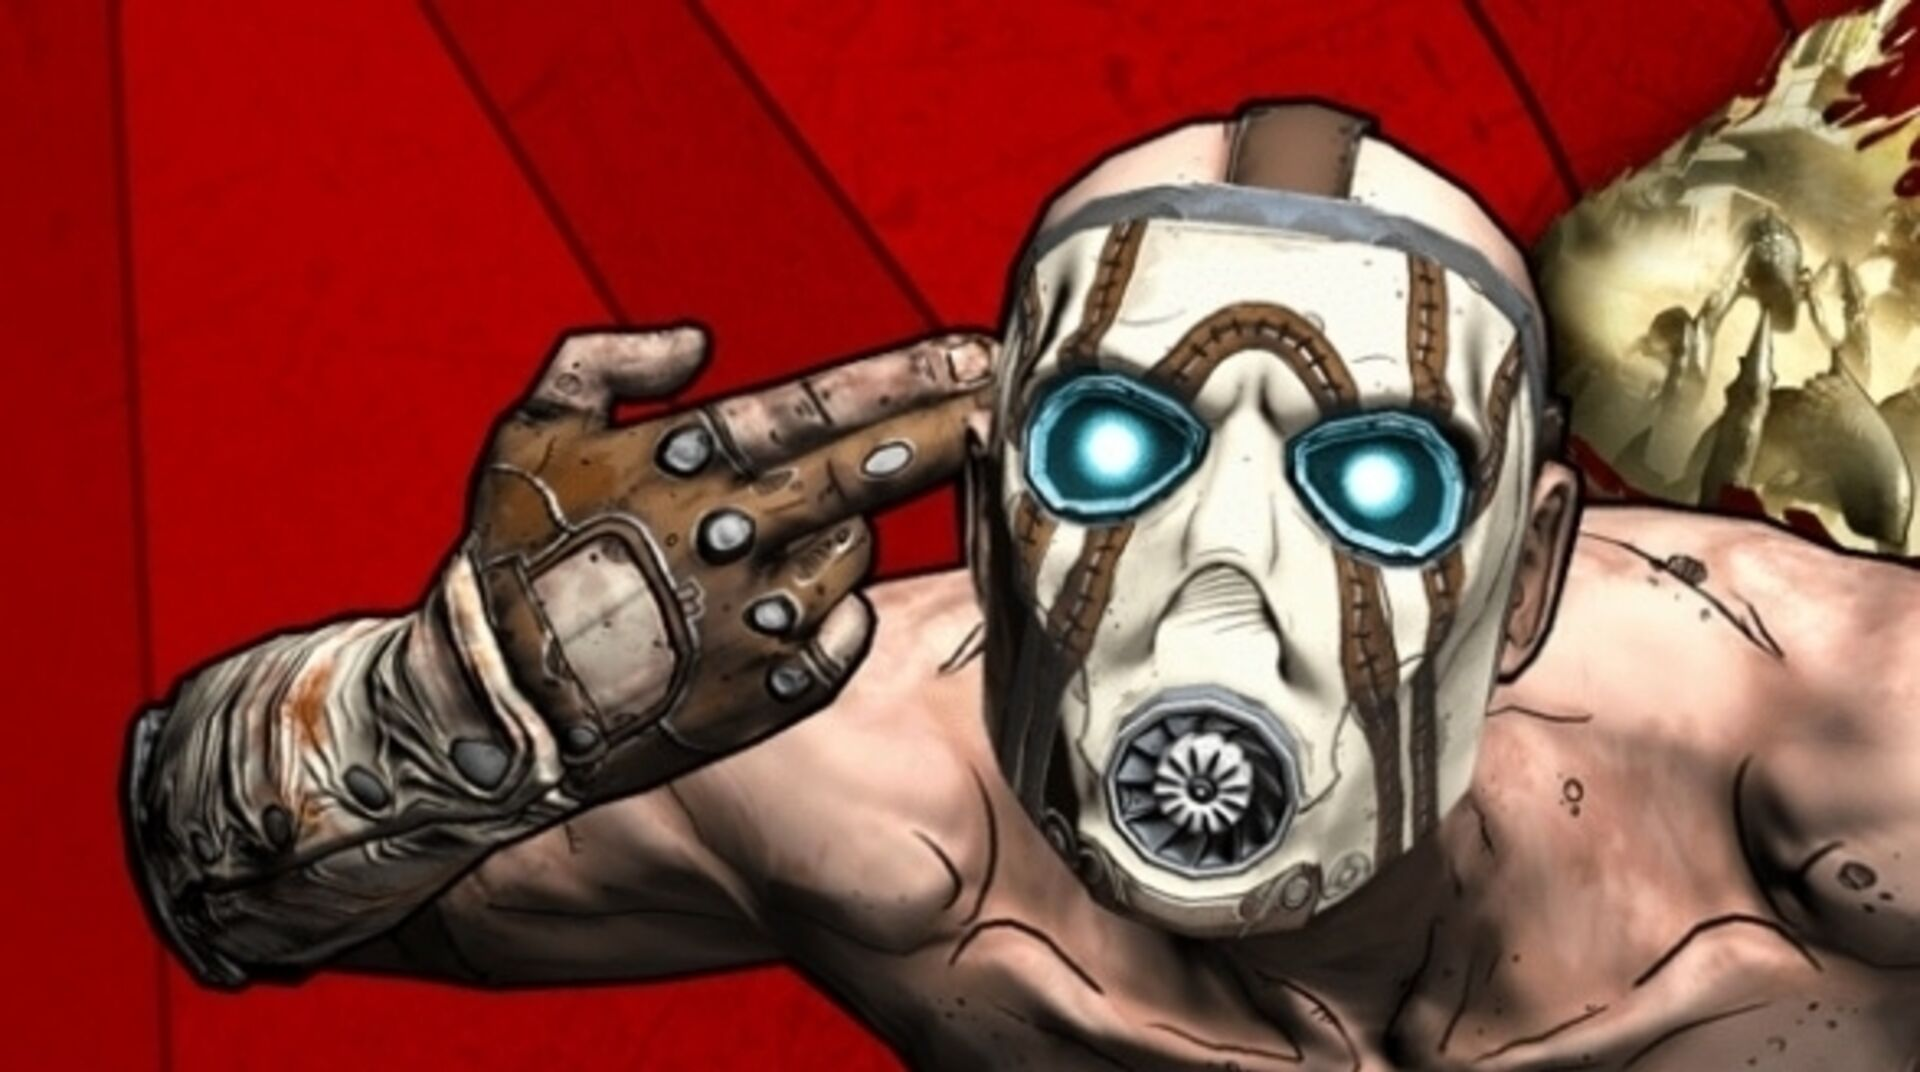 It looks like Borderlands 3 PC will launch as an Epic Games store